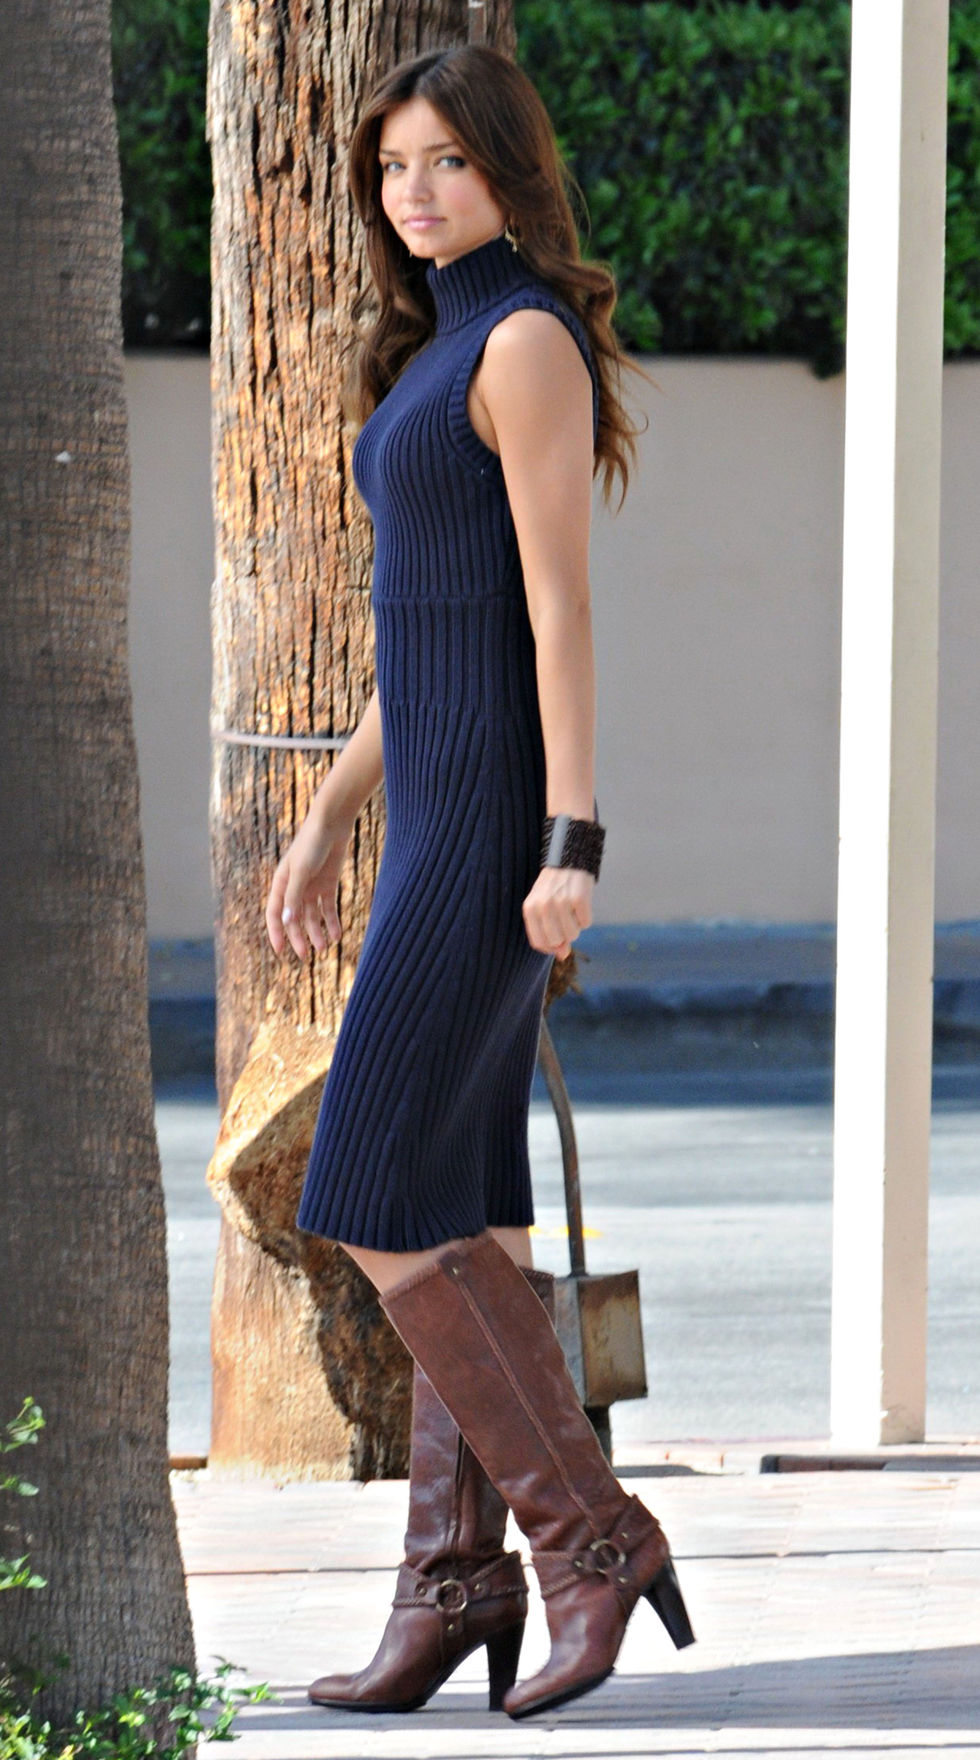 miranda-kerr-photoshoot-candids-in-palm-springs-01